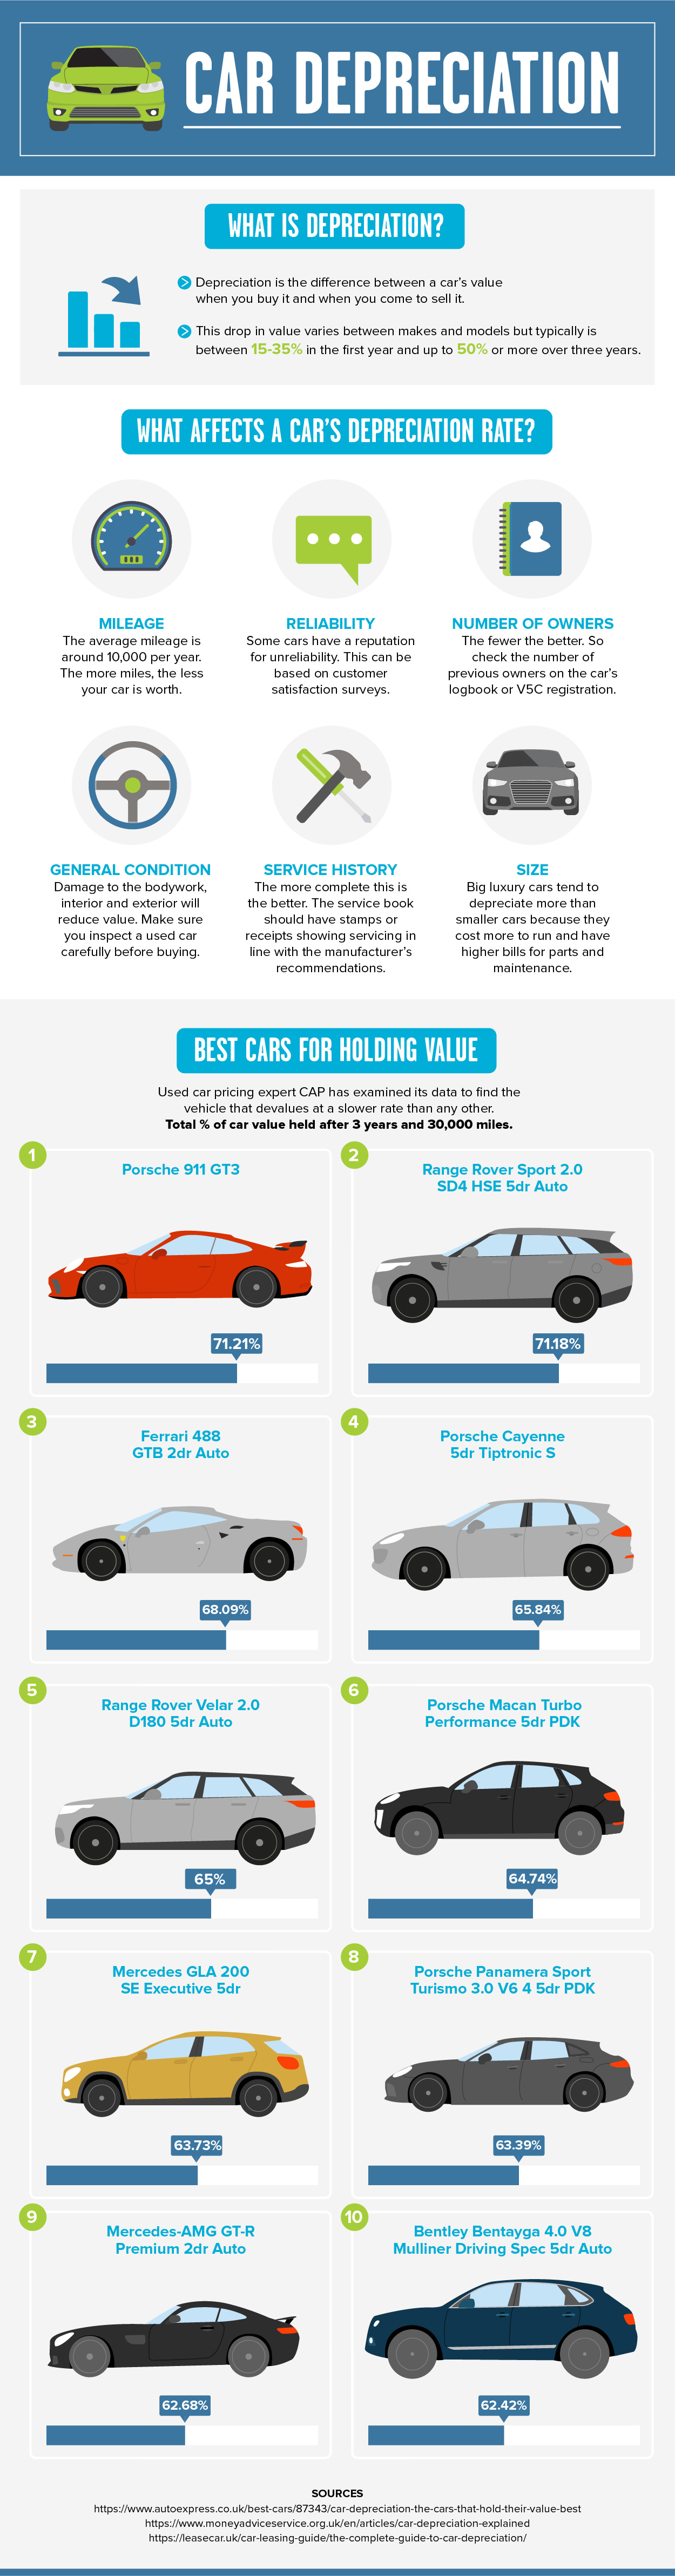 the best cars for holding value infographic. Black Bedroom Furniture Sets. Home Design Ideas